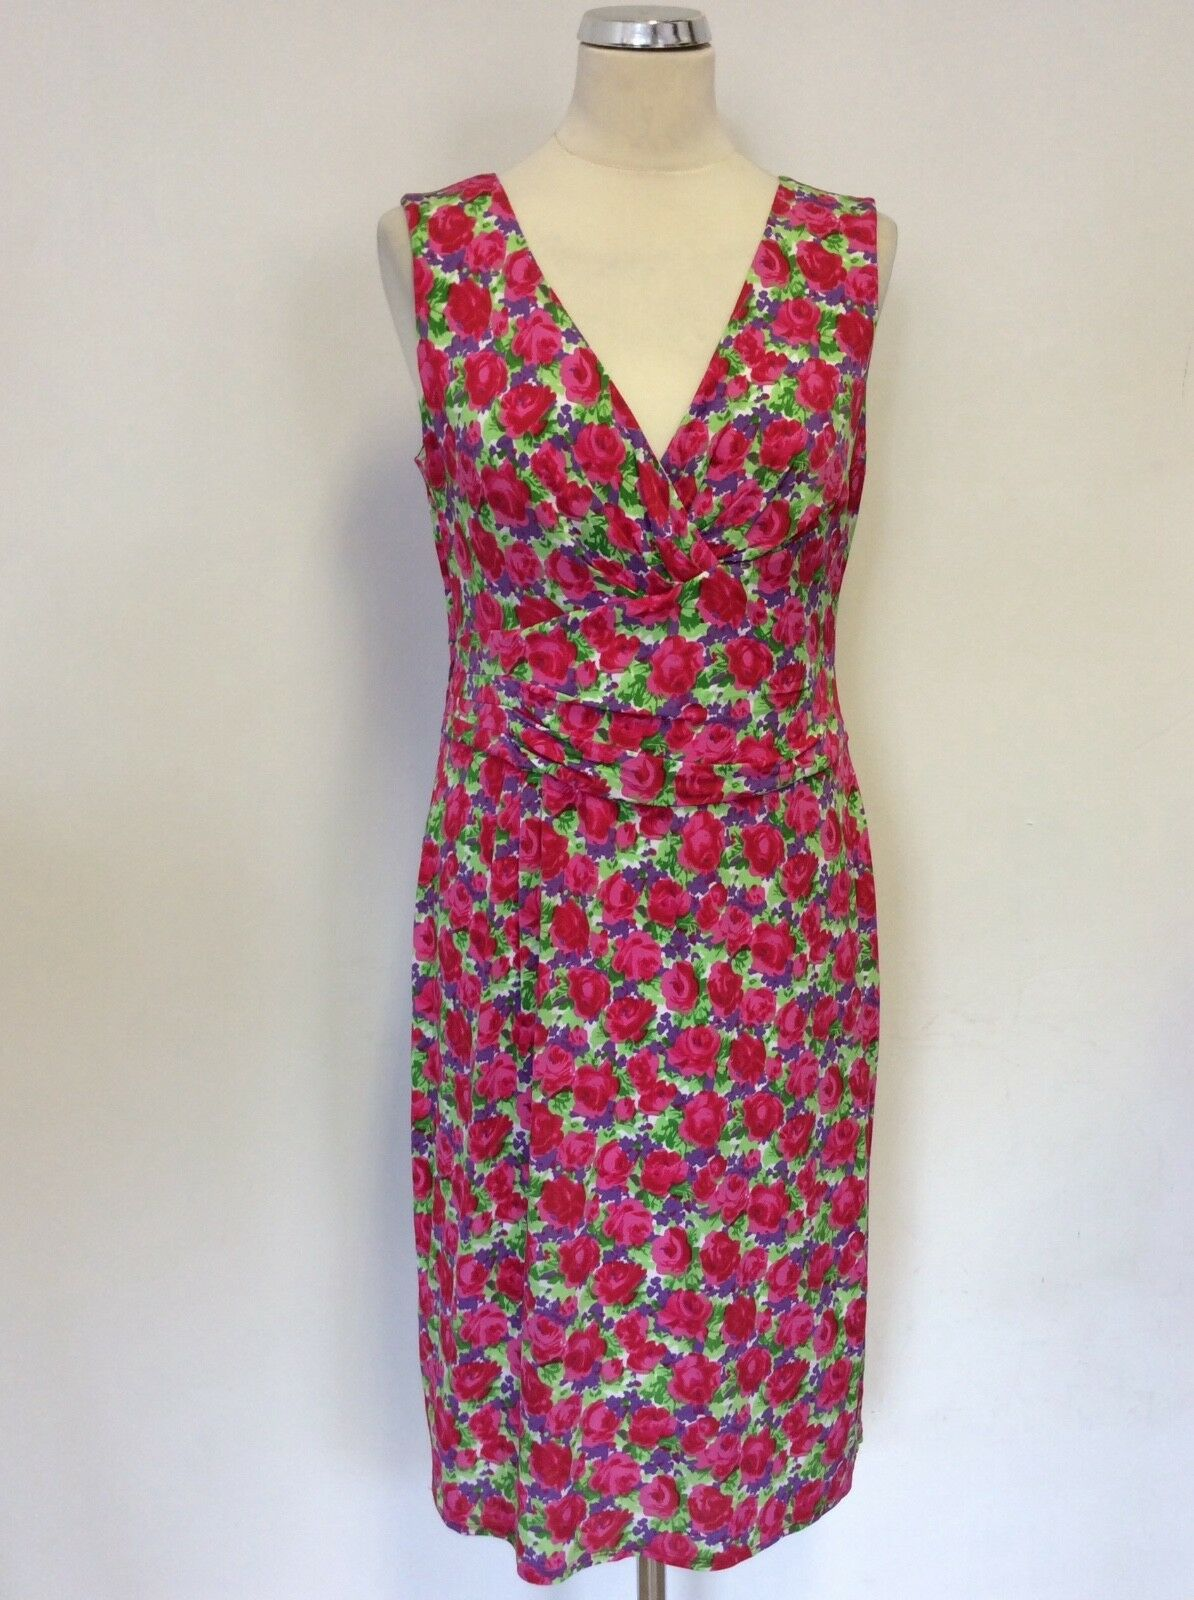 PHASE EIGHT RED pink FLORAL PRINT SLEEVELESS STRETCH PENCIL DRESS SIZE 14